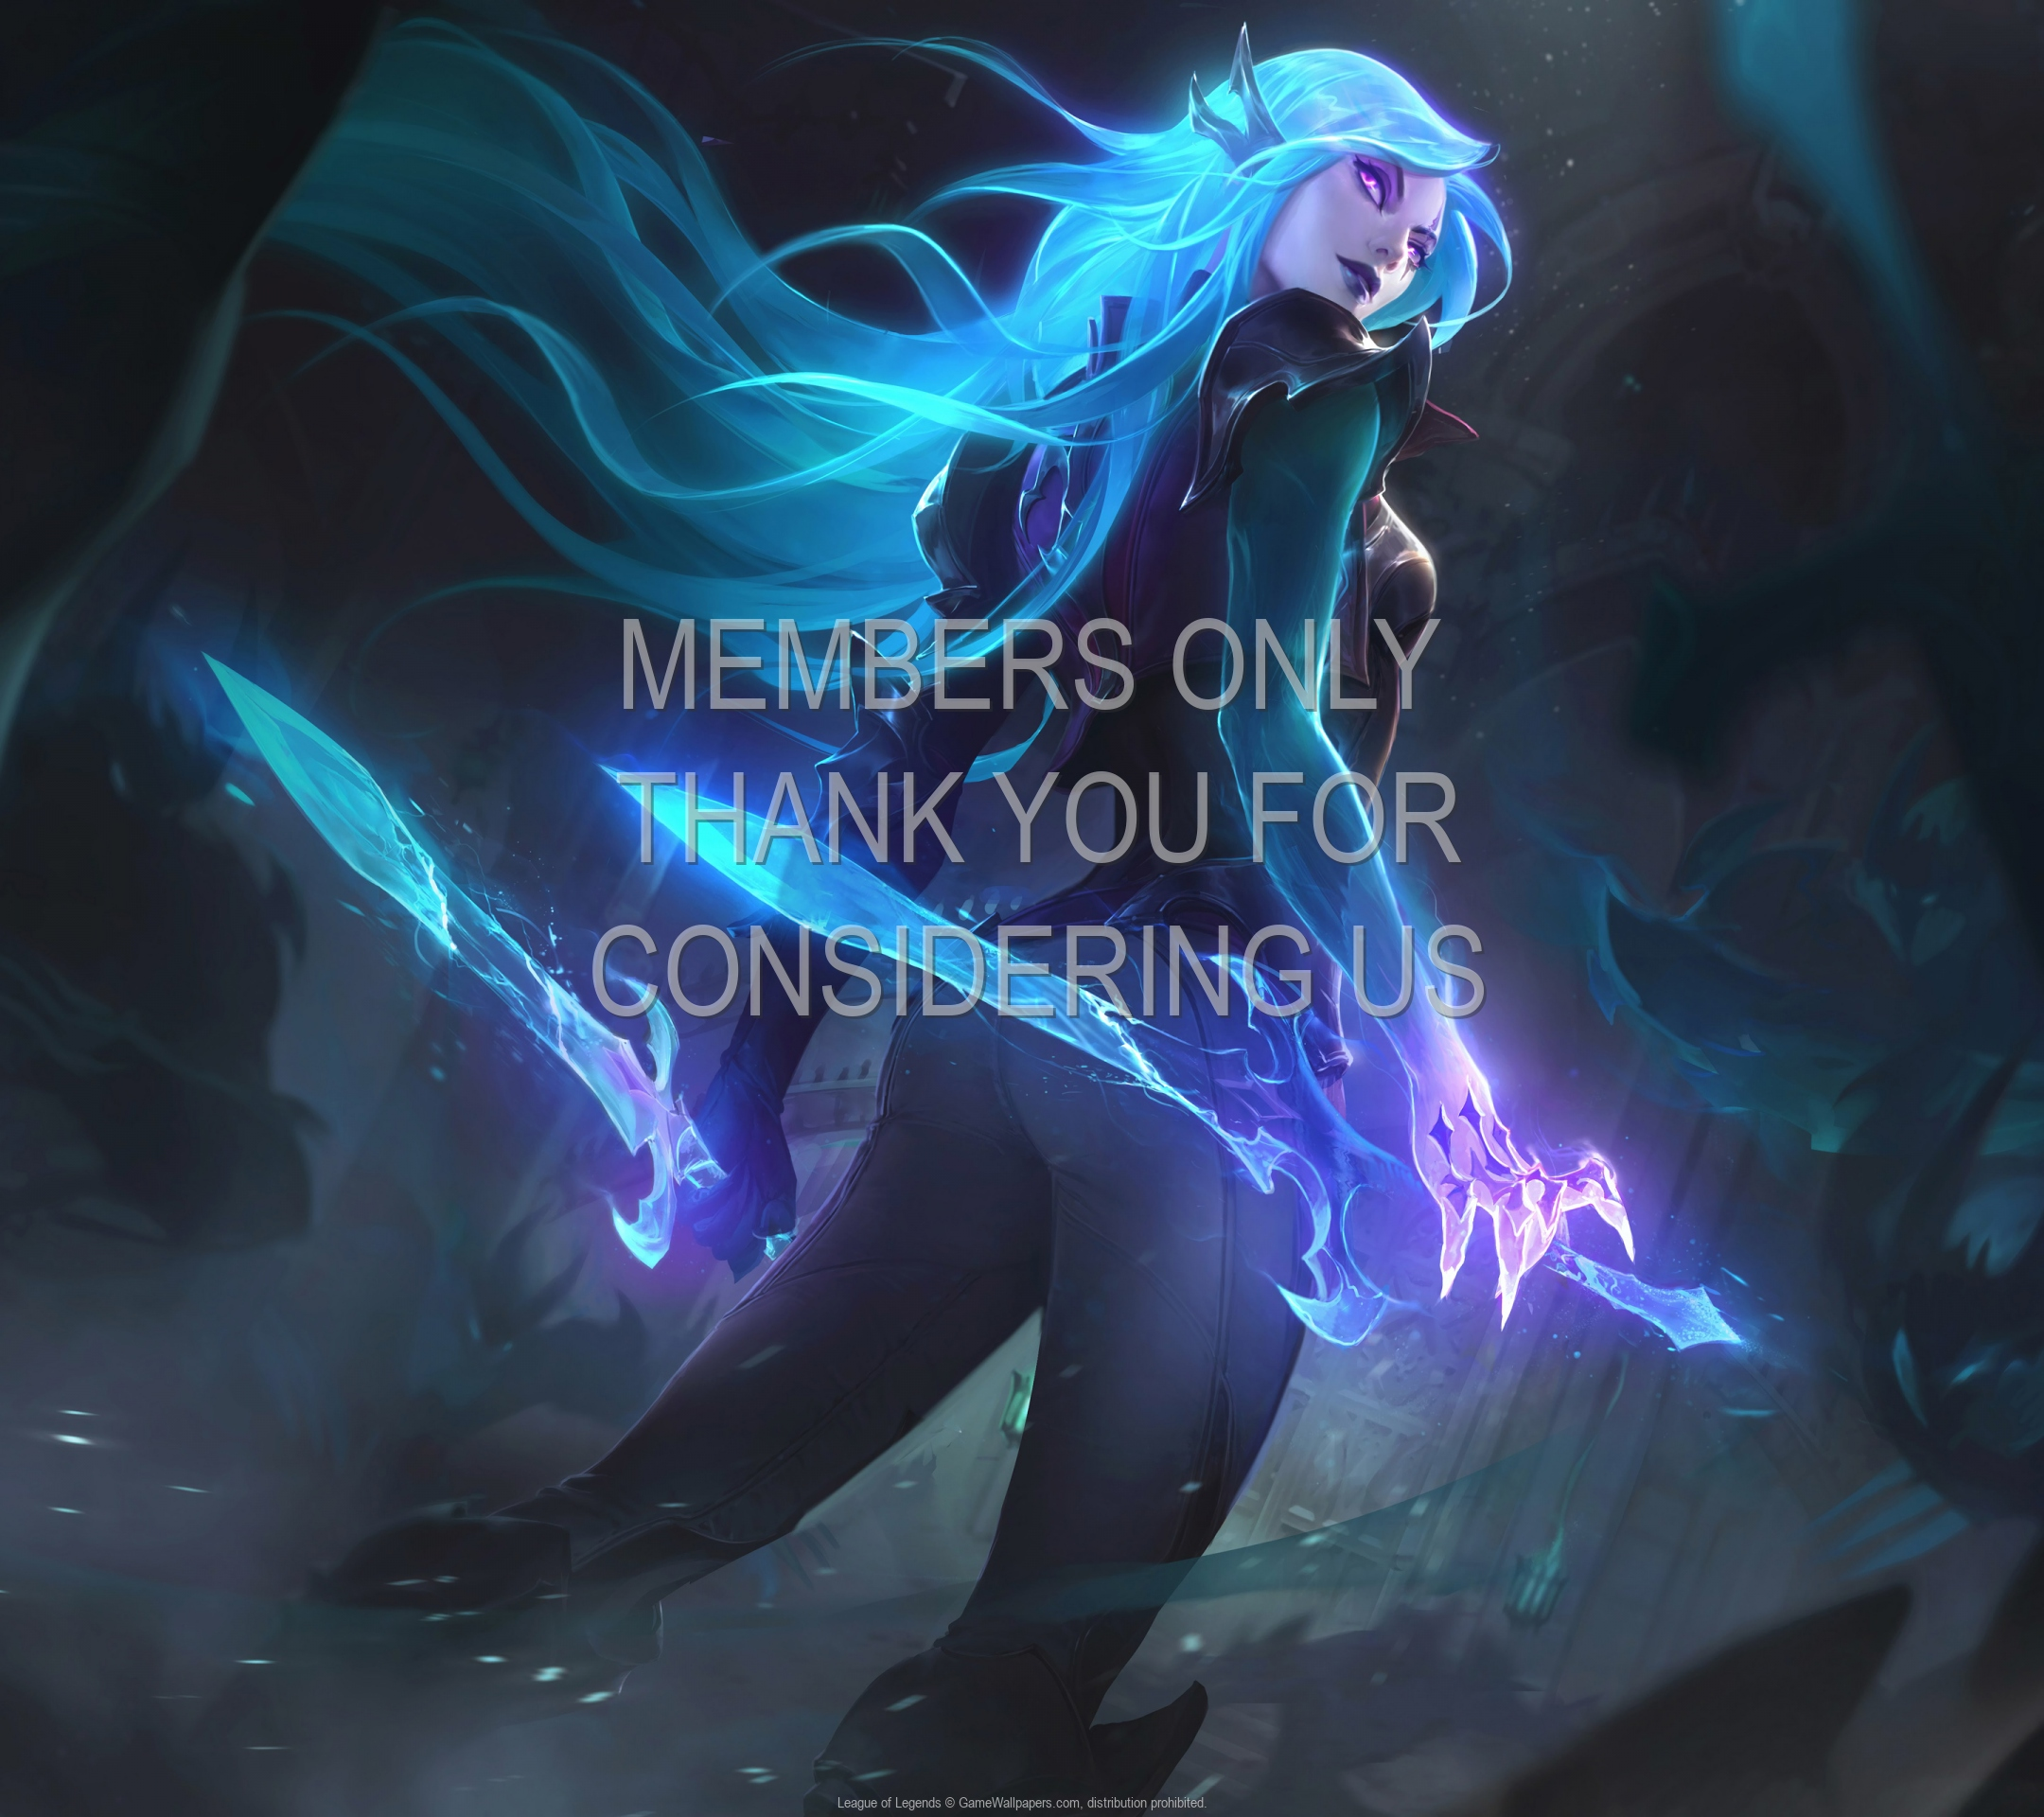 League of Legends 1920x1080 Mobile wallpaper or background 77